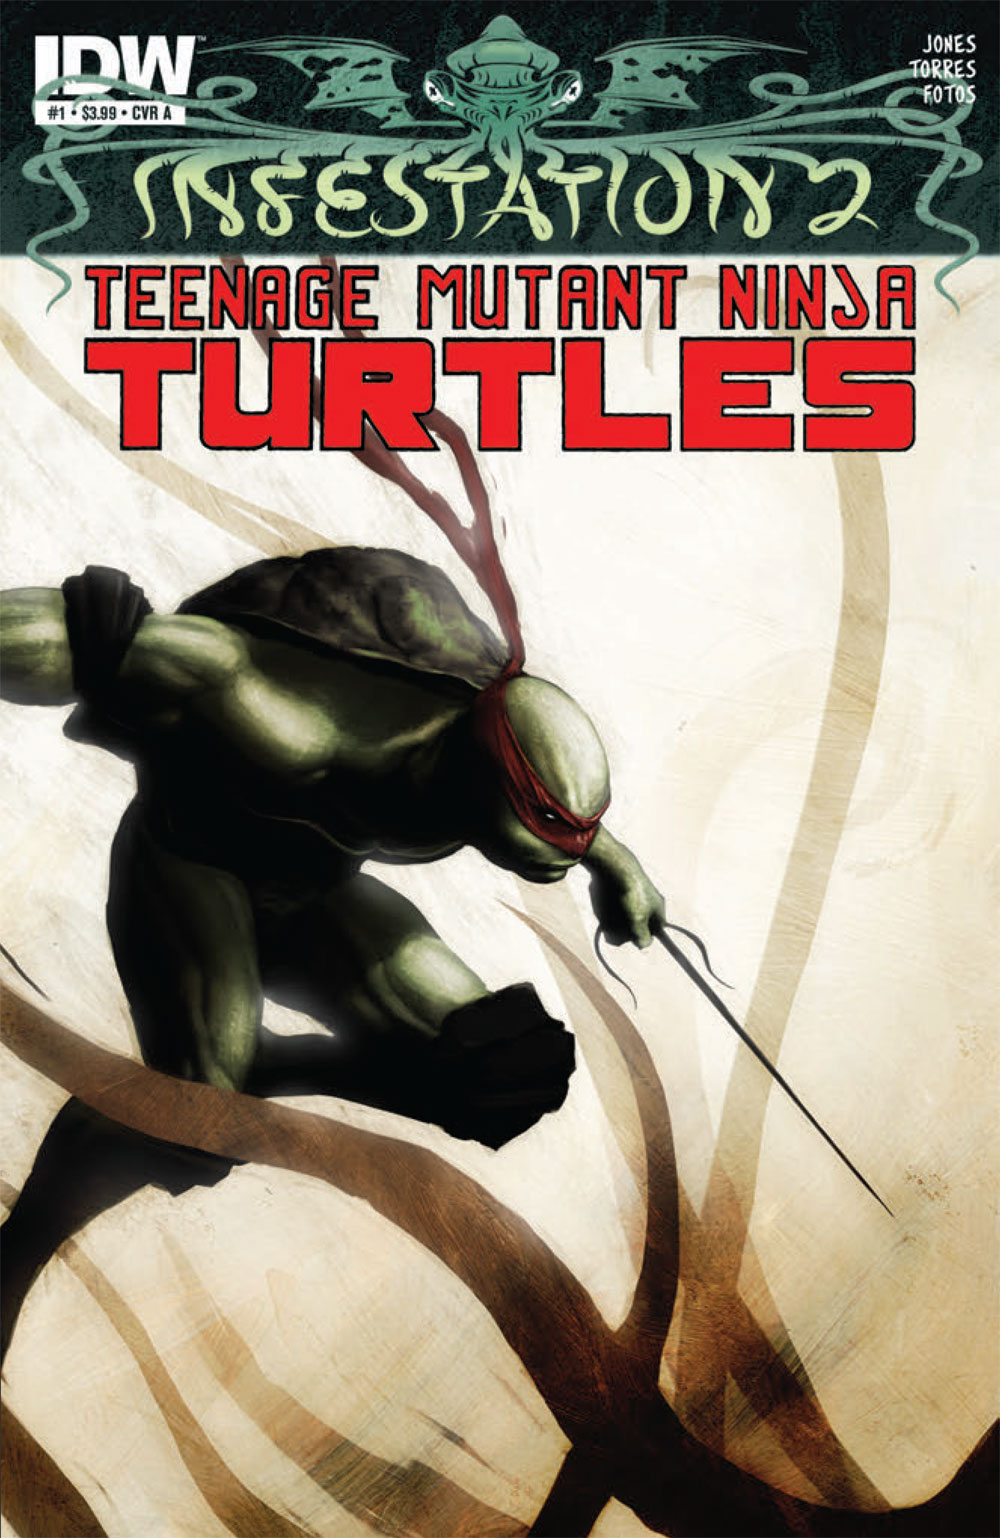 "Infestation 2: Teenage Mutant Ninja Turtles #1 Writer: Tristan Jones Artist: Mark Torres Colorist: Jay Fotos Letterer: Shawn Lee Publisher: IDW Release Date: March 7, 2012 Lovecraftian horror has ""infested""..."